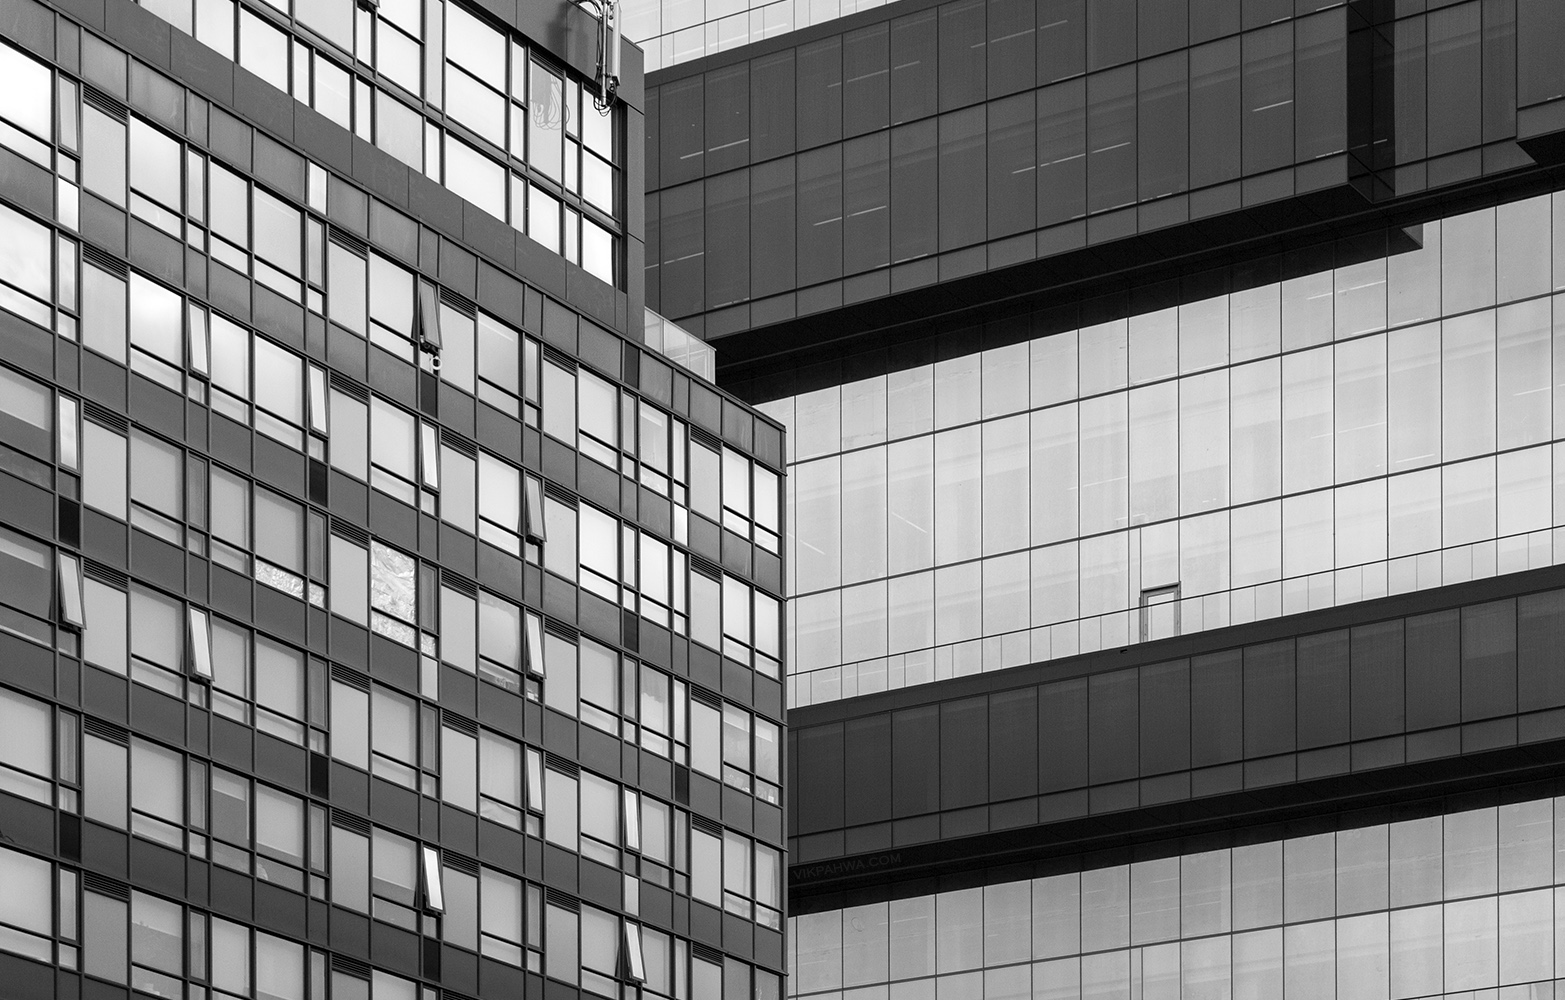 20170331. A monochrome match: 501 Adelaide Street W versus the G